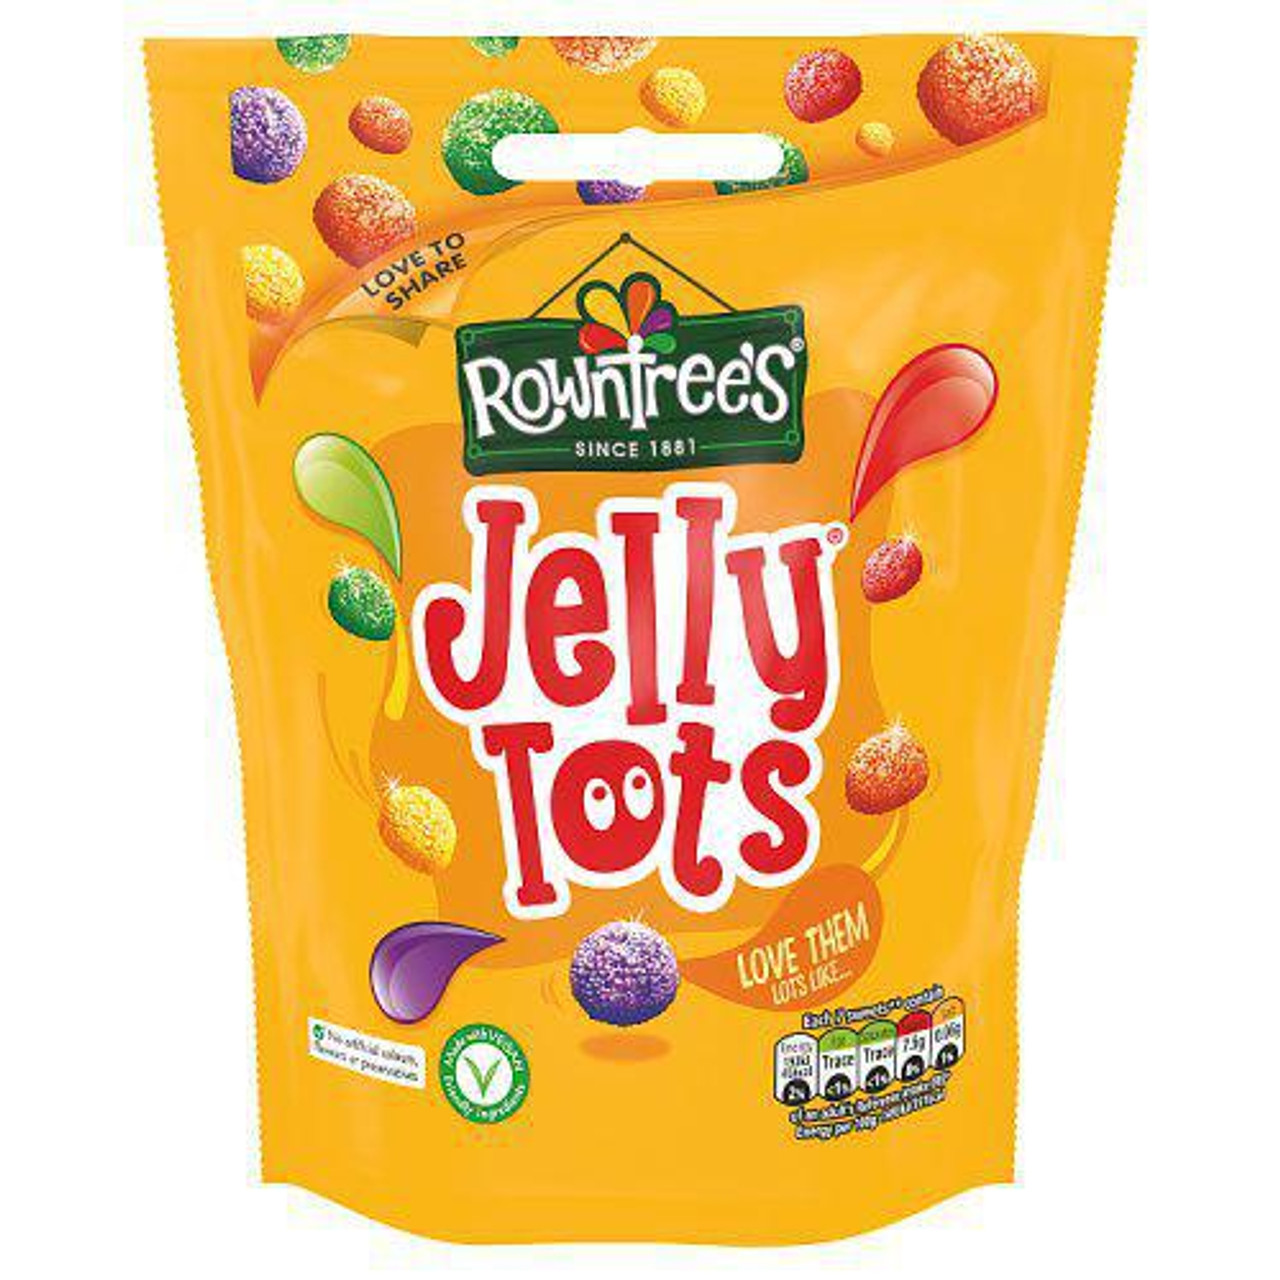 Rowntrees - Jelly Tots, 150g